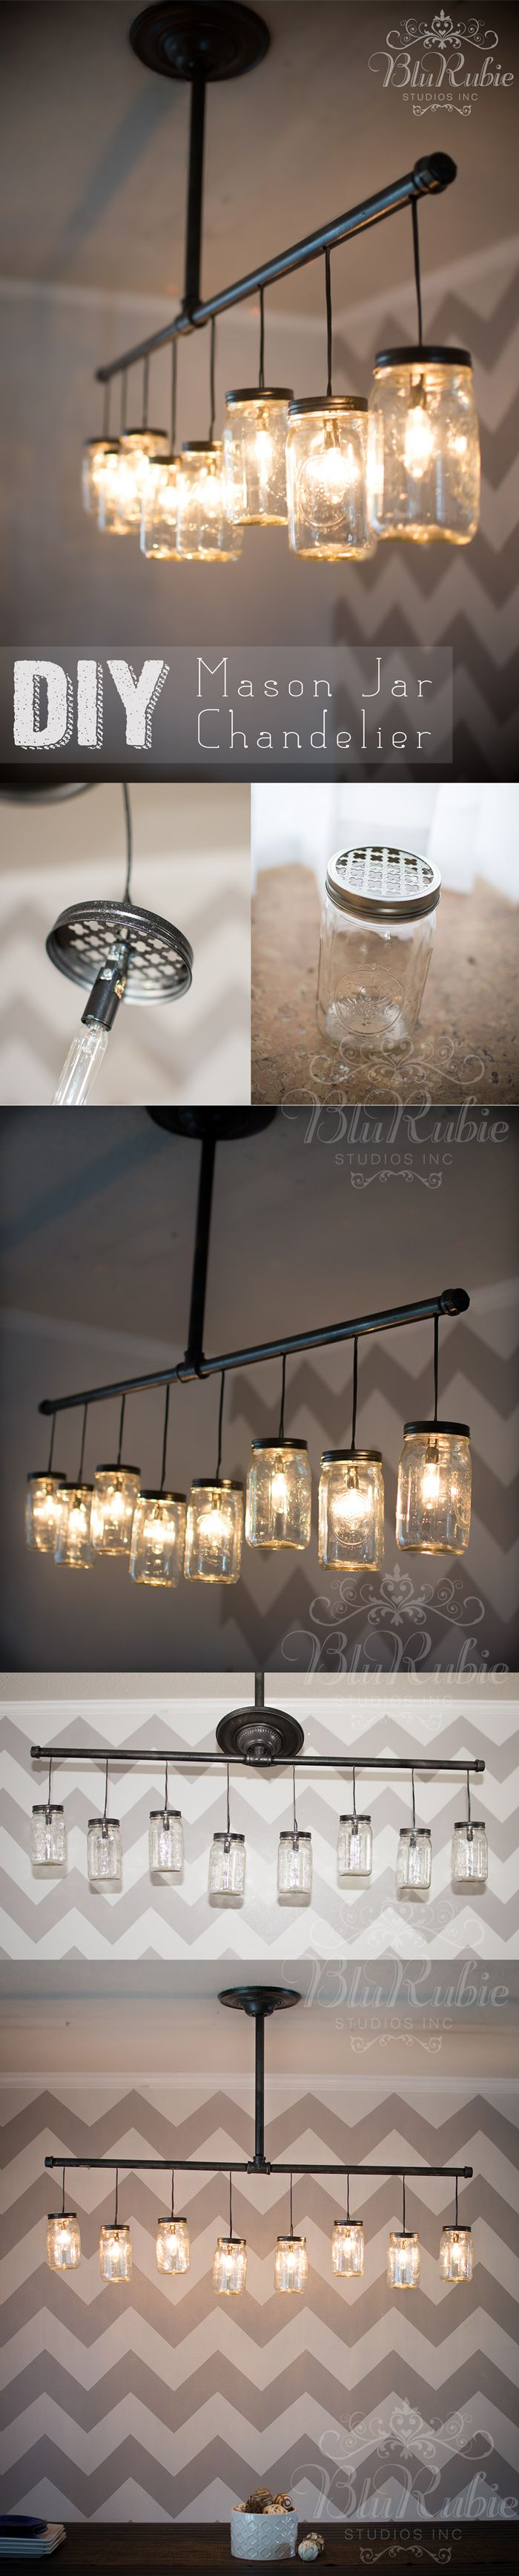 17 best i can see the light images on pinterest good ideas cool pensacola photography and design blurubie studios diy mason jar chandelier arubaitofo Choice Image